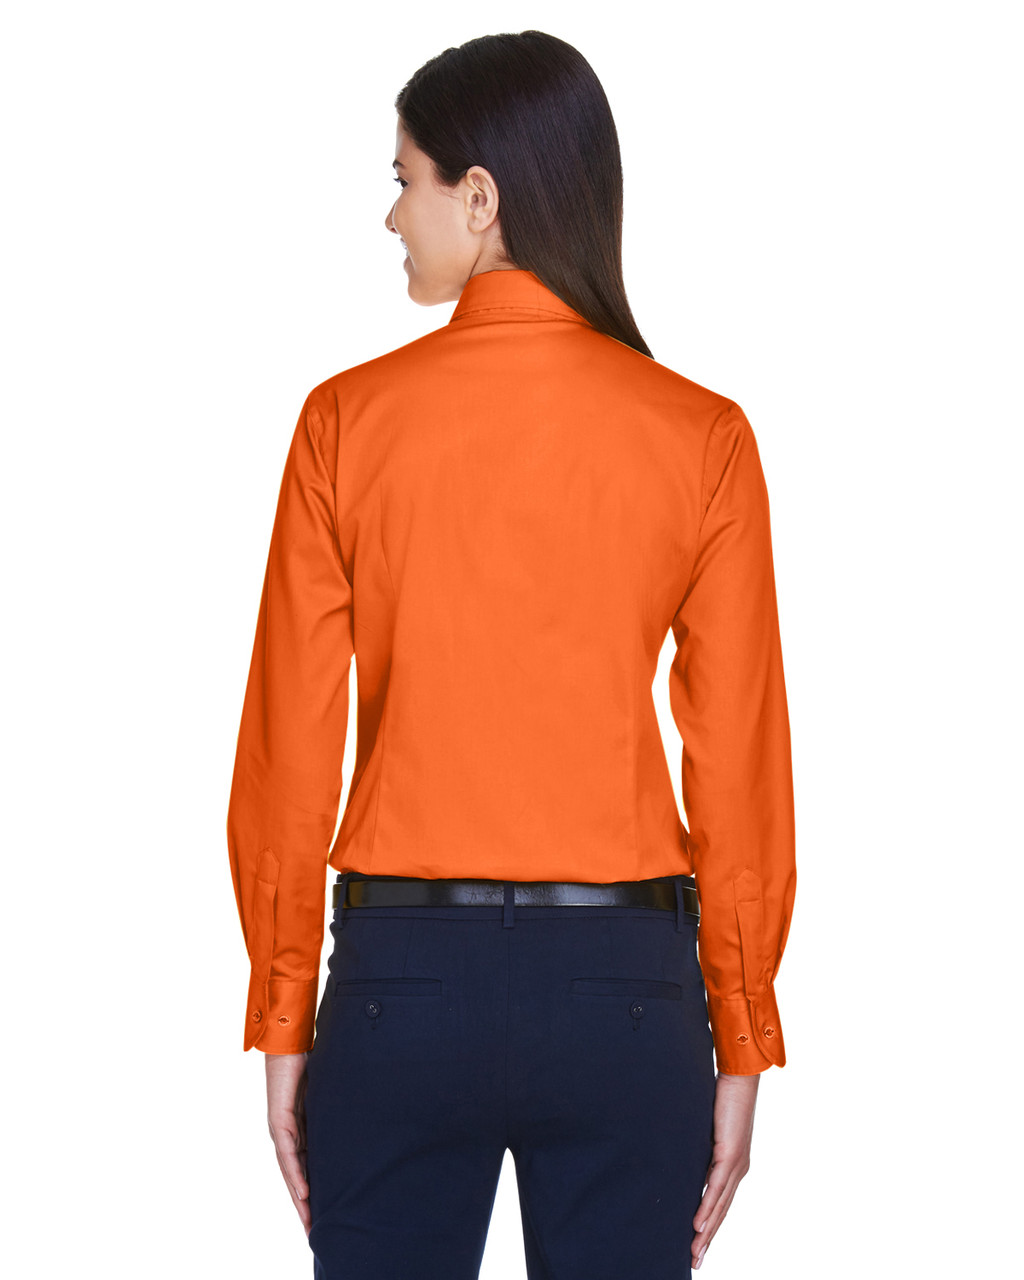 Team Orange - Back, M500W Harriton Easy Blend Long-Sleeve Twill Shirt with Stain-Release | BlankClothing.ca